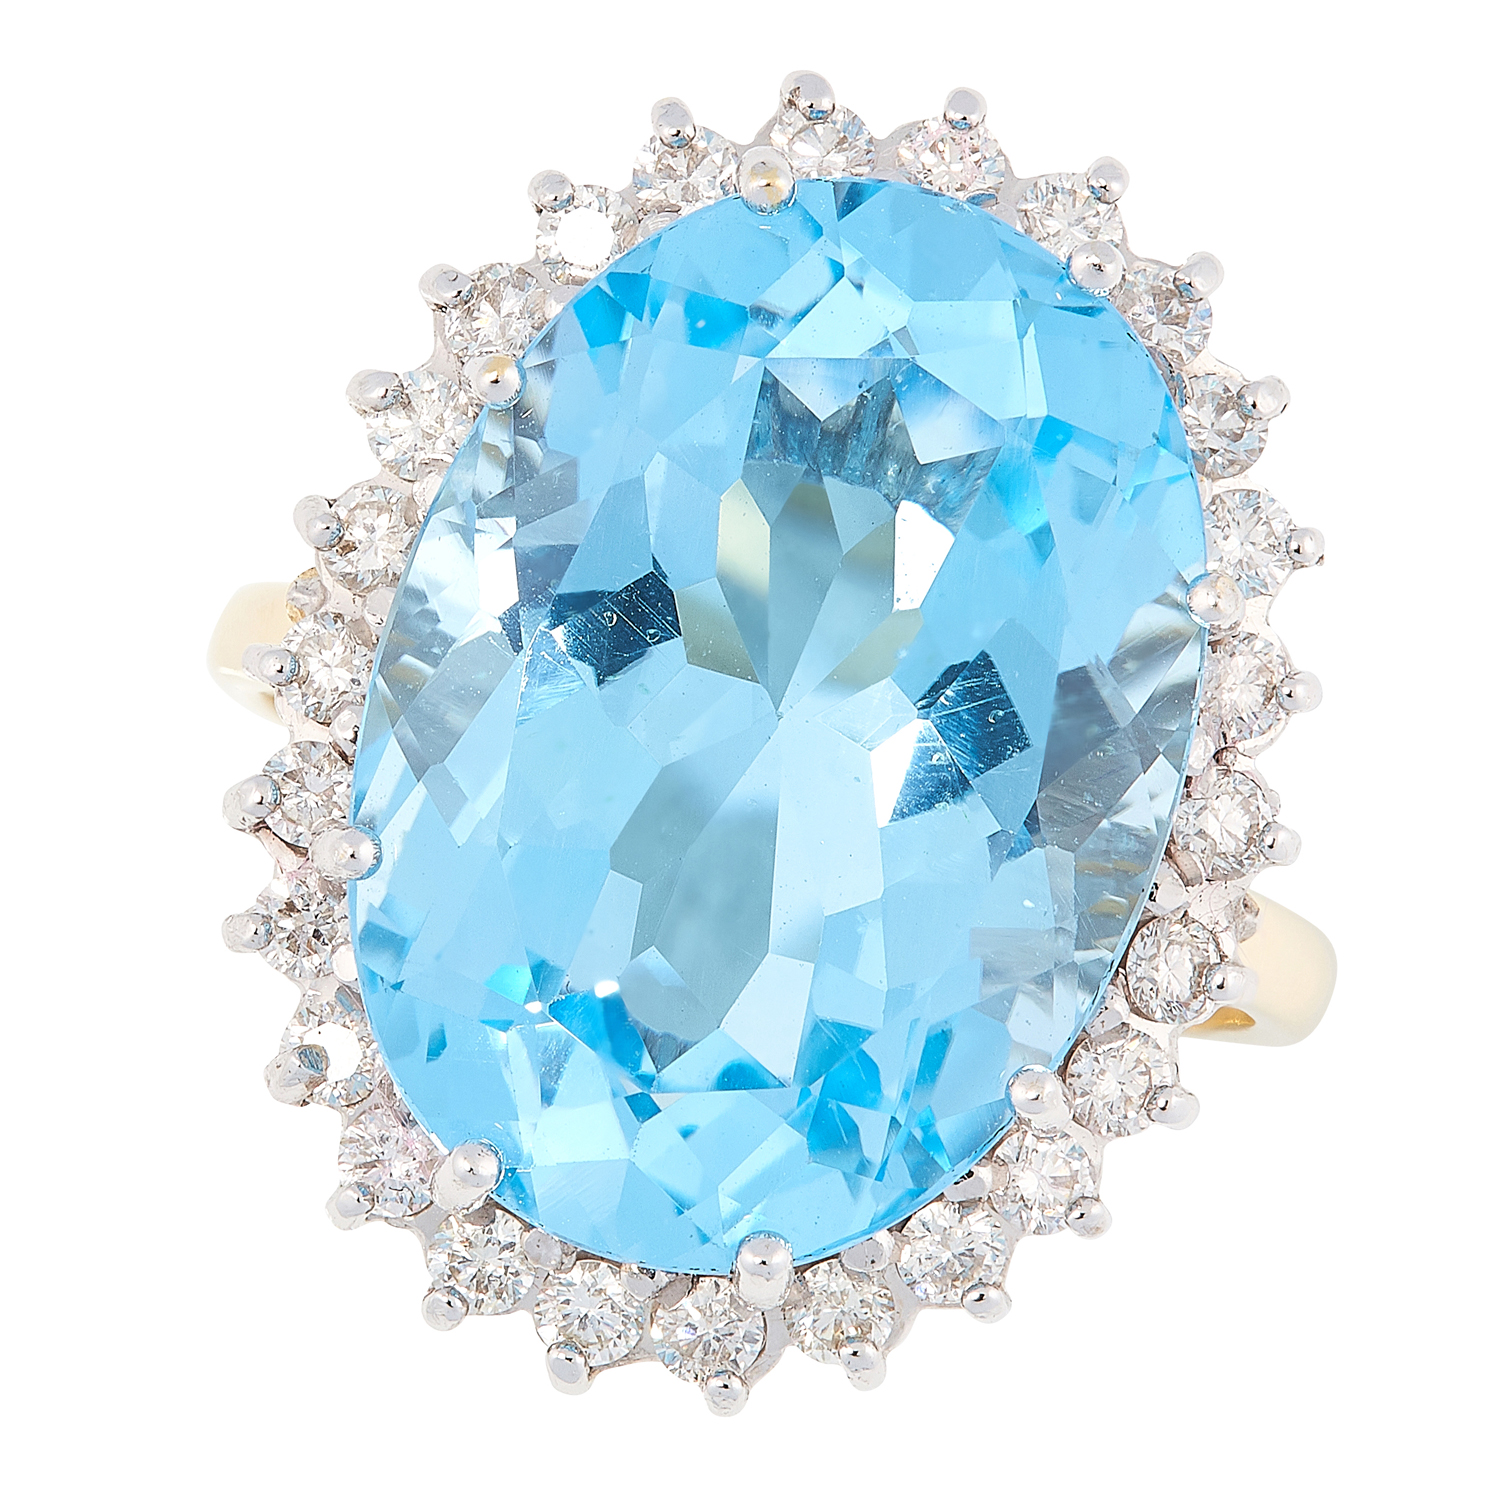 A TOPAZ AND DIAMOND CLUSTER RING in 18ct yellow gold, set with an oval cut topaz in a border of